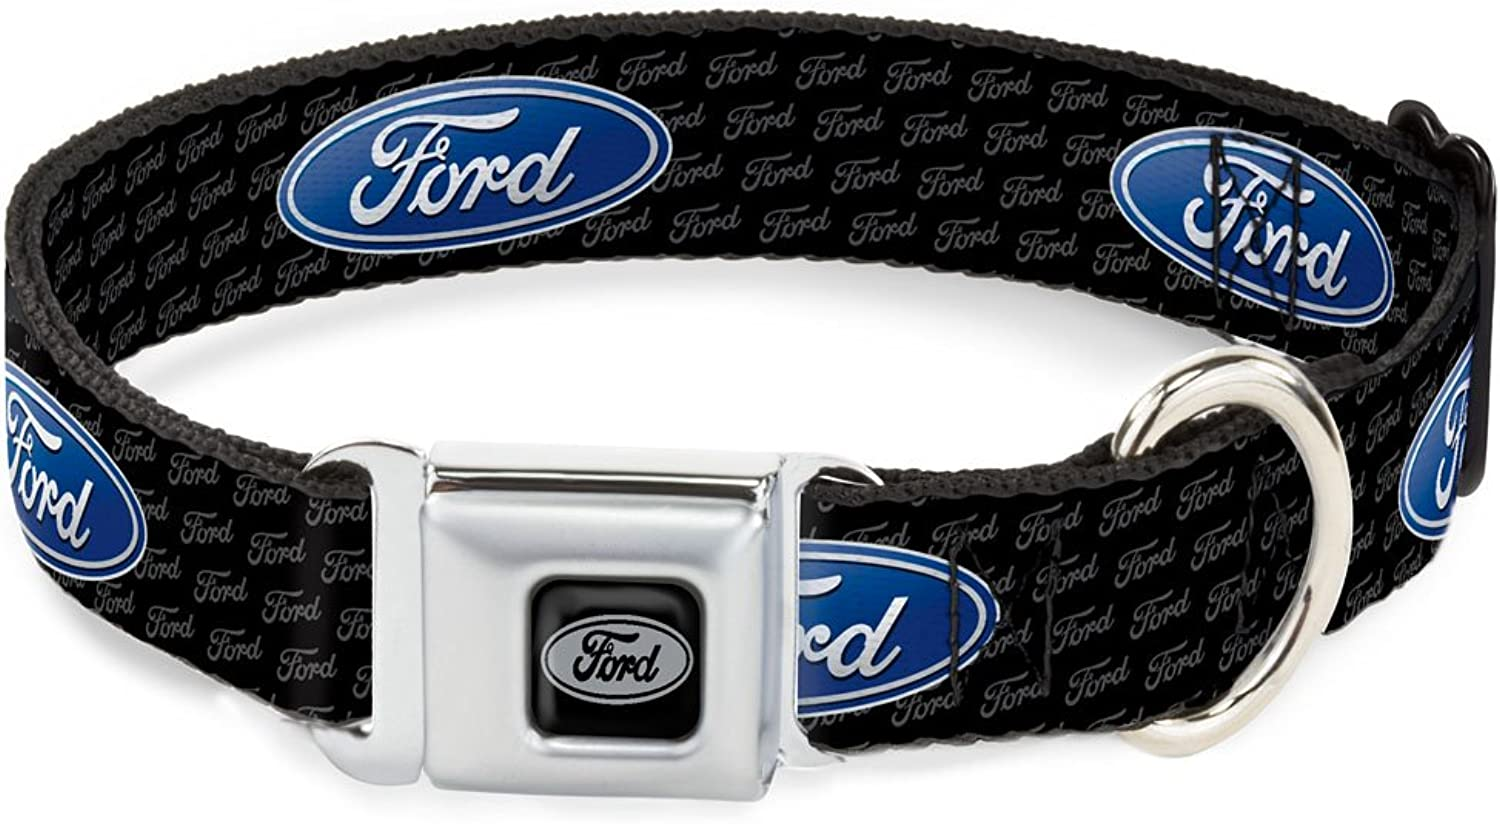 BuckleDown DCWFE004WM Dog Collar Seatbelt Buckle, Ford Oval Repeat with Text, 1.5  by 1623